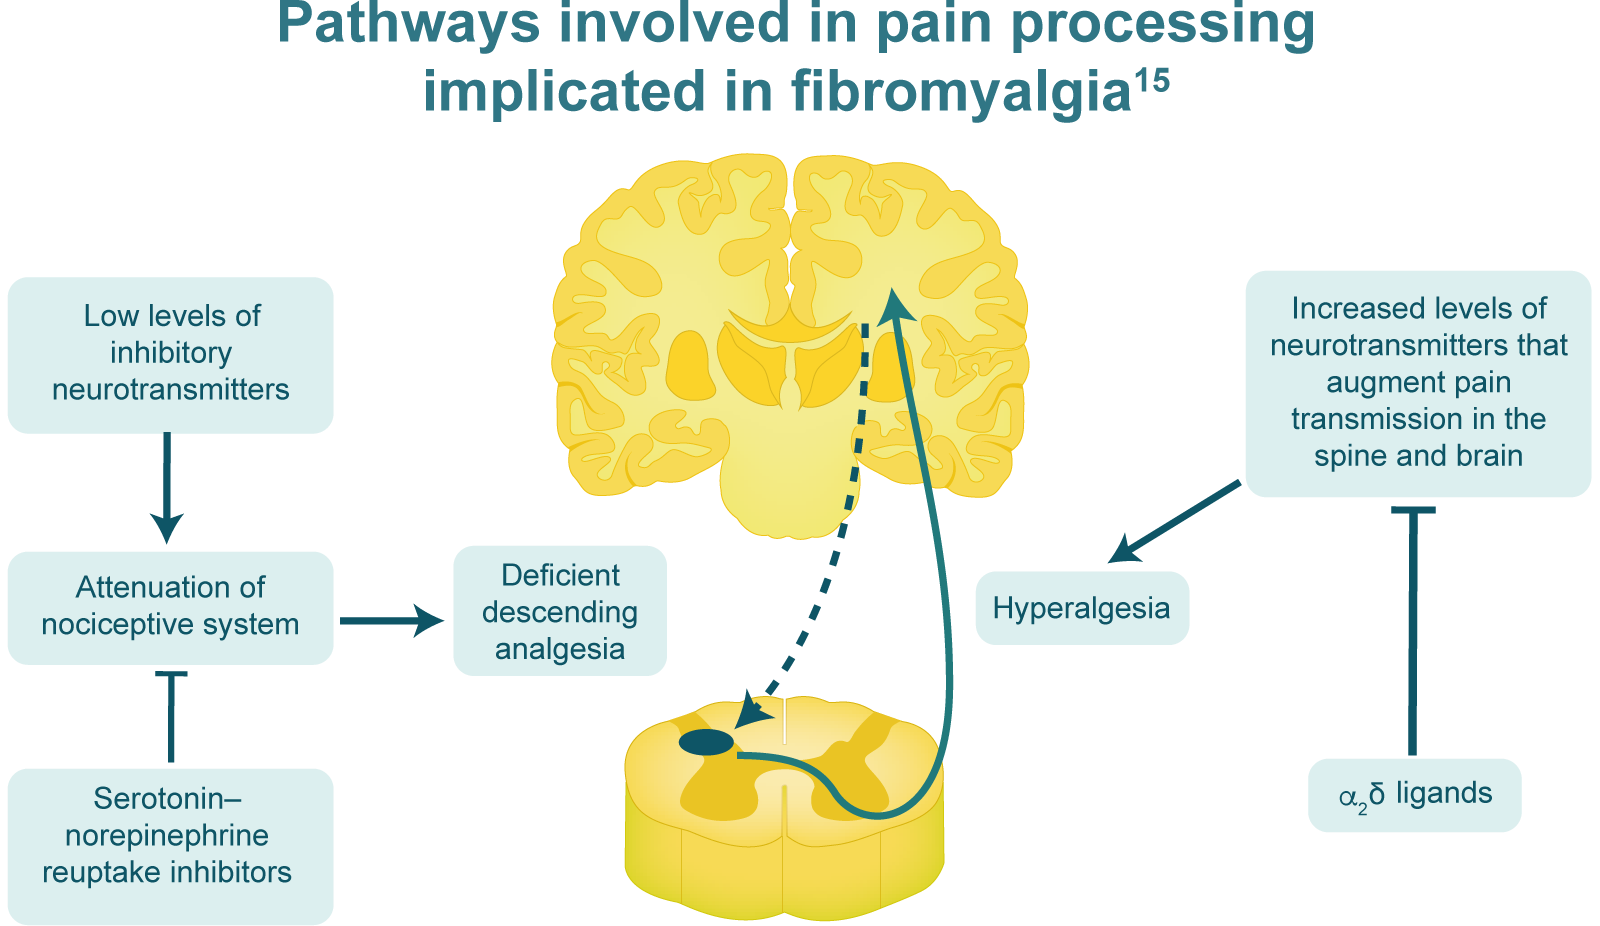 Pathways involved in pain processing implicated in fibromyalgia